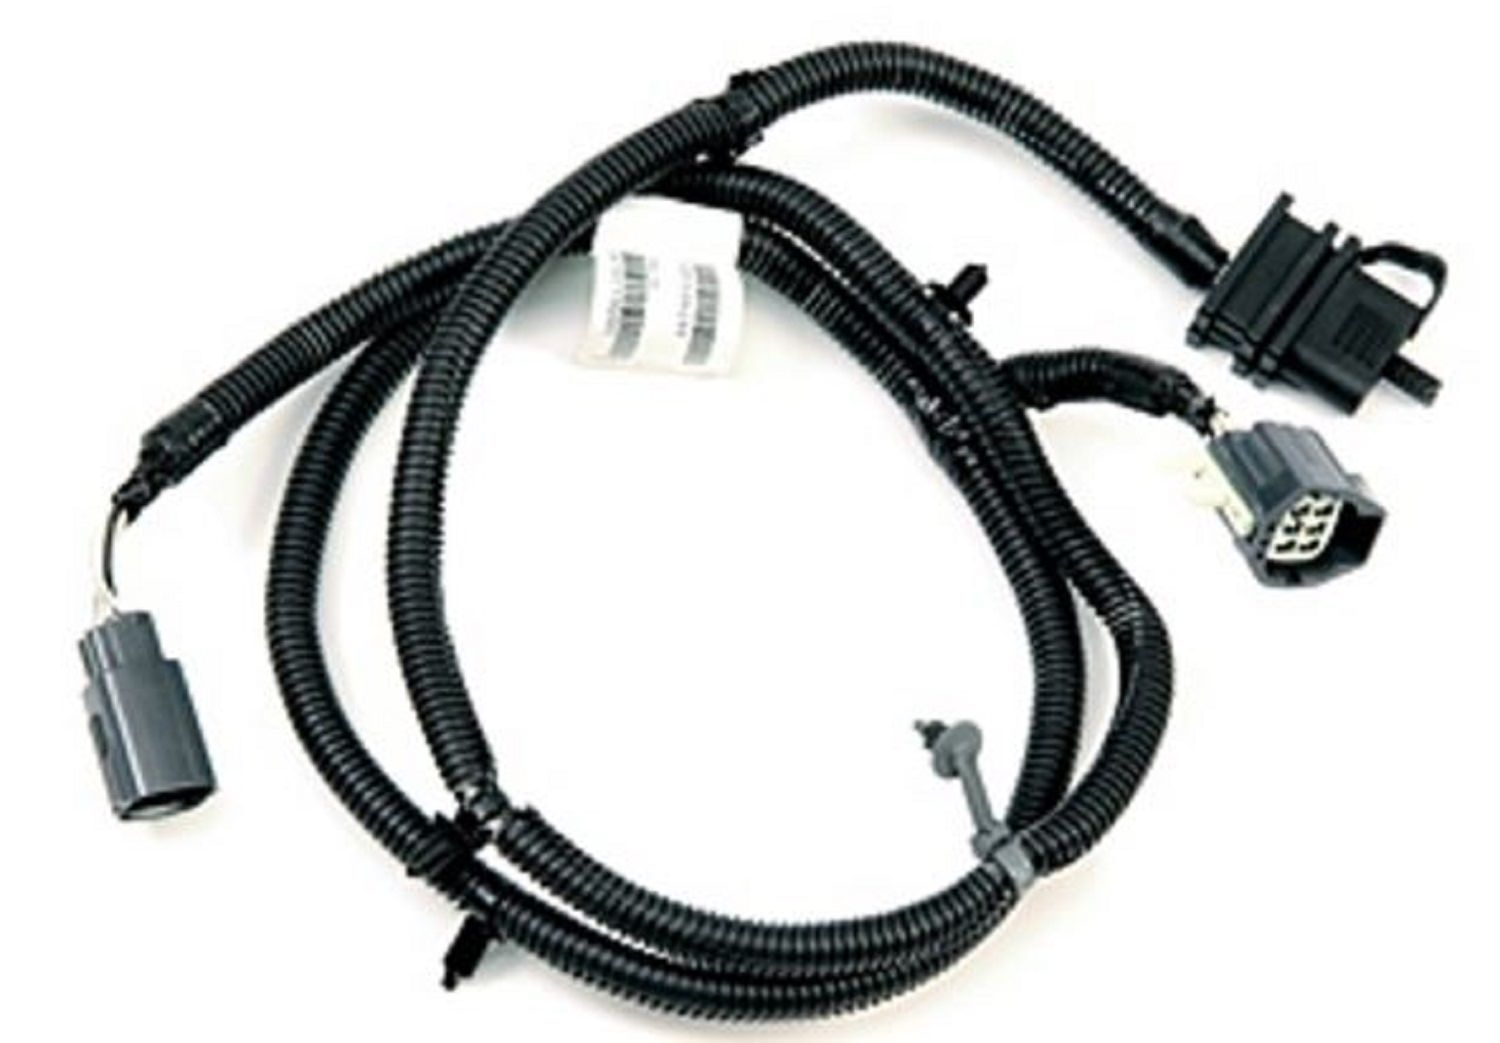 genuine chrysler mopar parts accessories part 82212455ad trailer hitch wiring harness for chrysler town \u0026 country and dodge caravan 2011 2017